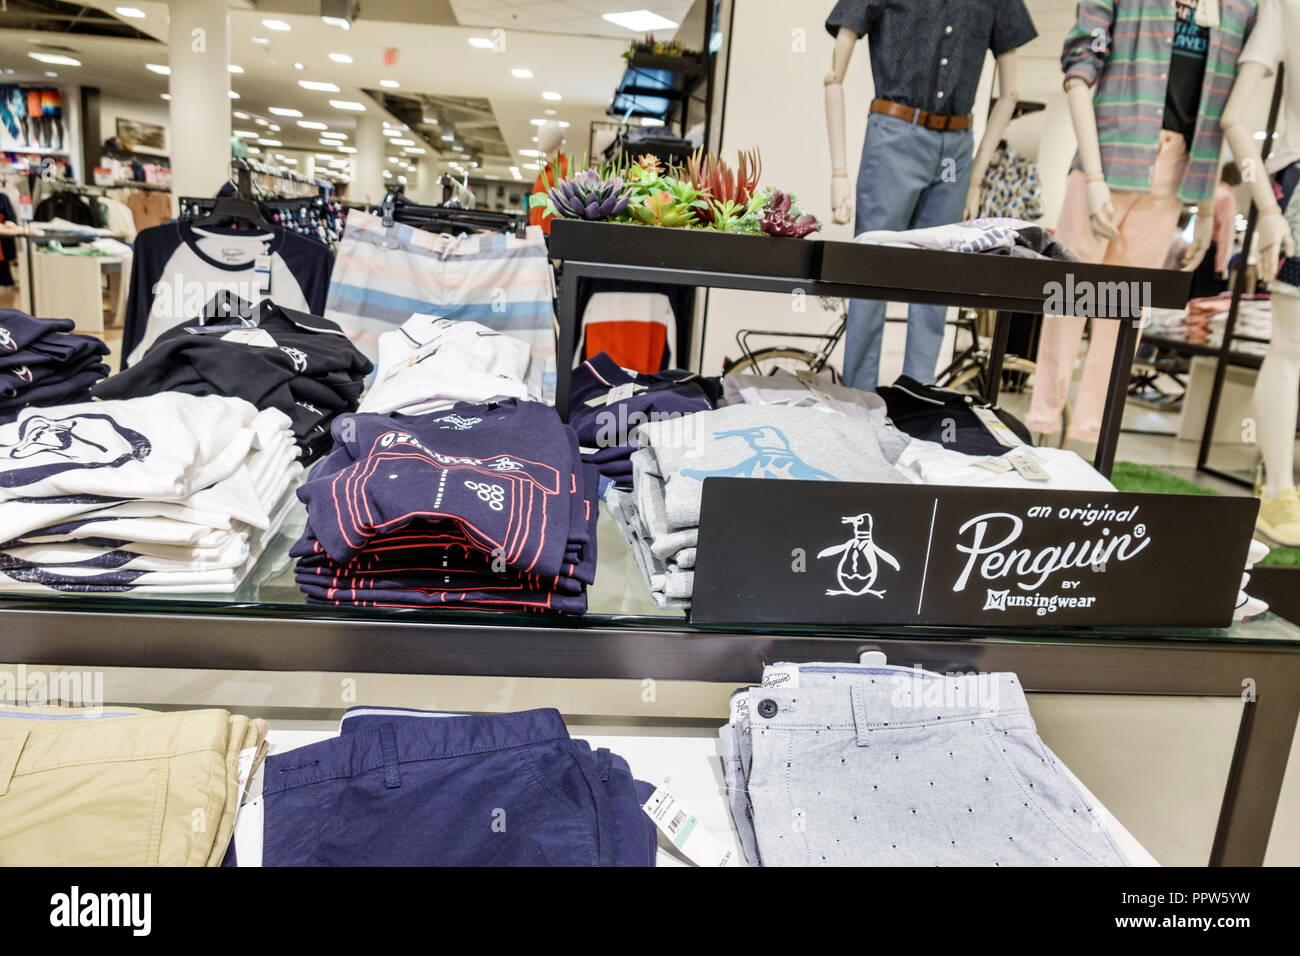 c7d0dbbac9b Miami Florida Kendall Dadeland Mall shopping Macy s Department Store inside  display sale Penguin sportswear clothing -